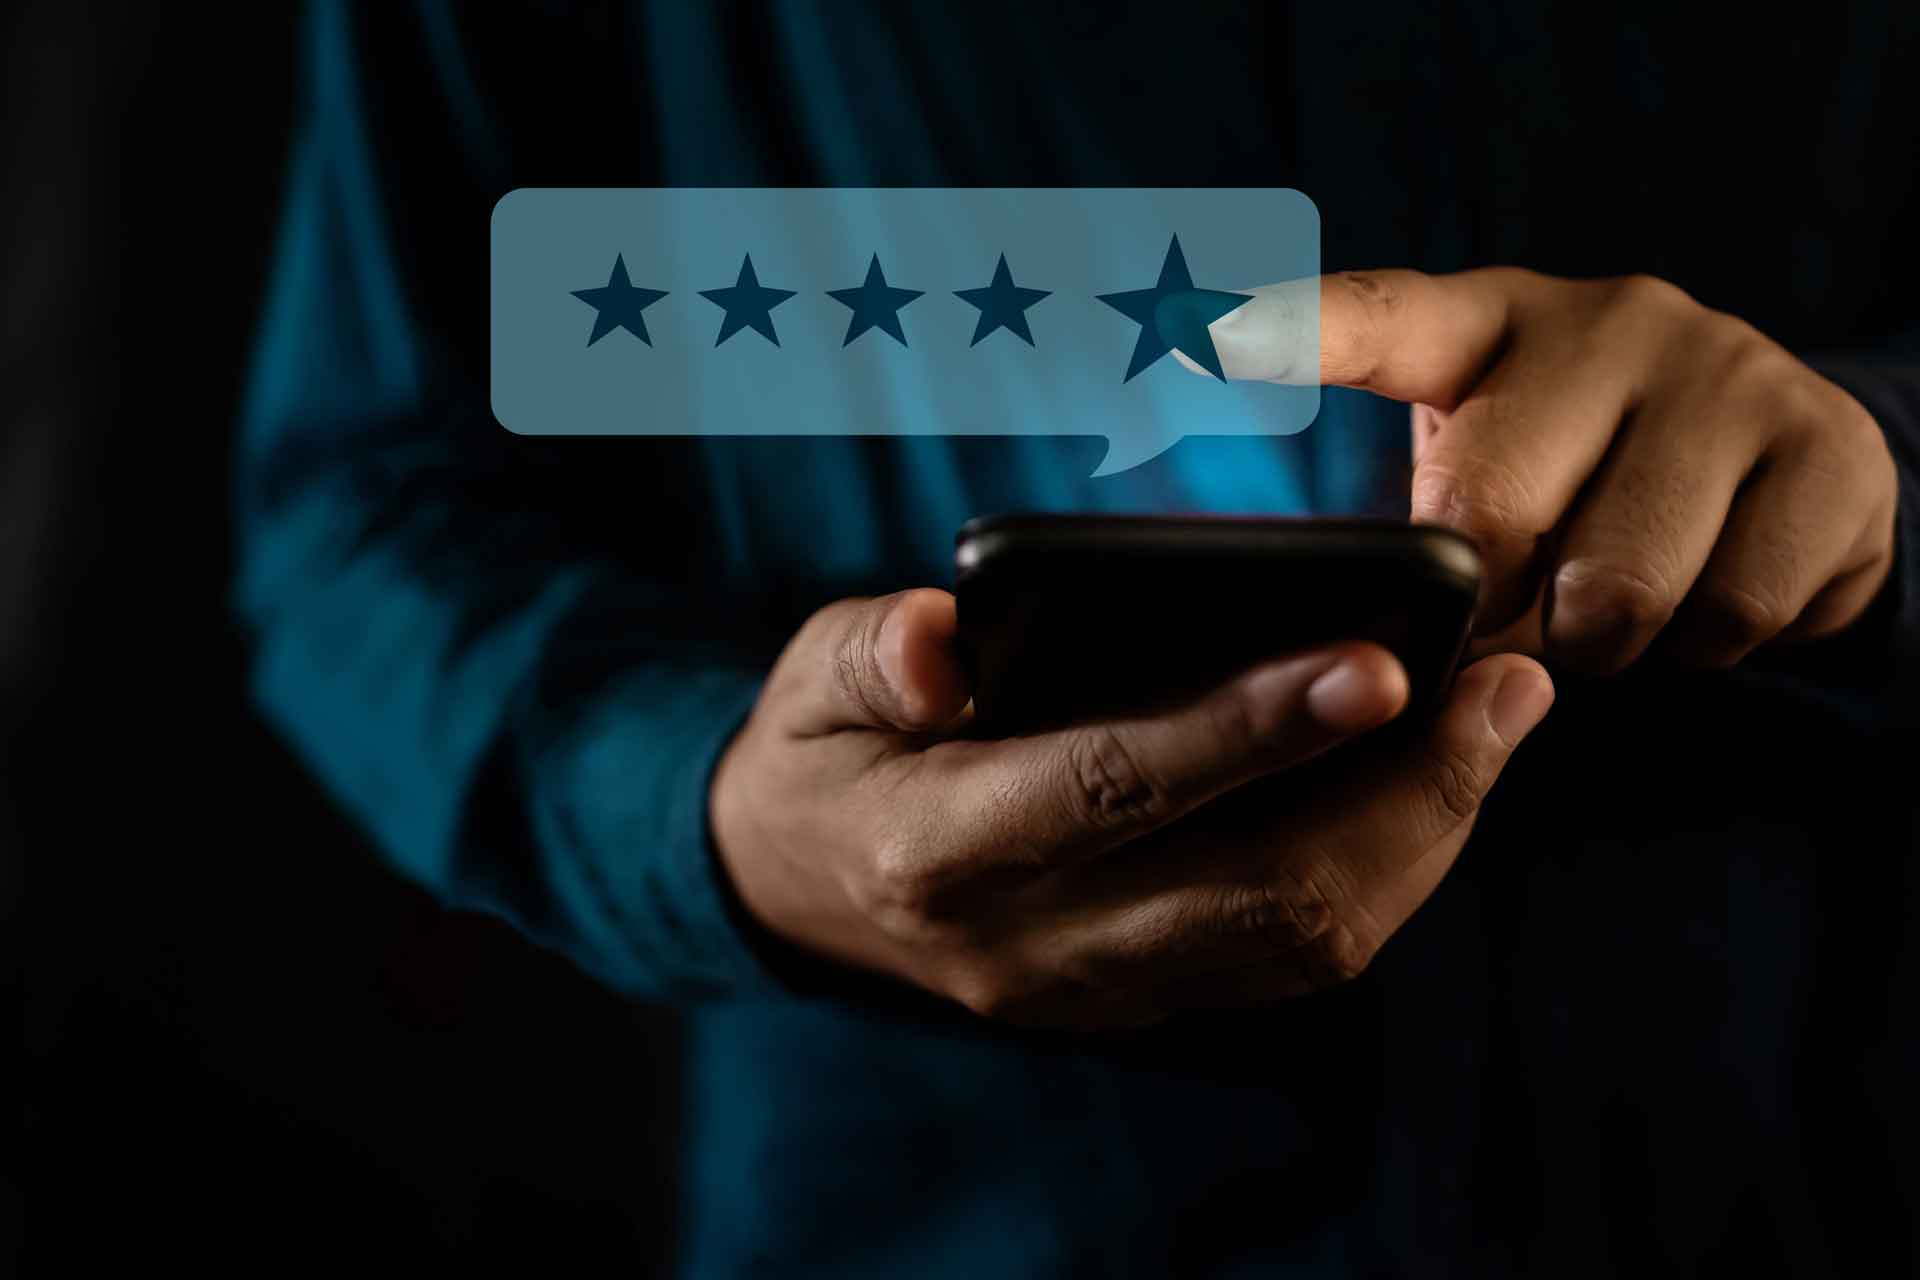 benefits of using wordpress for business modern man giving star rating positive review via smartphone